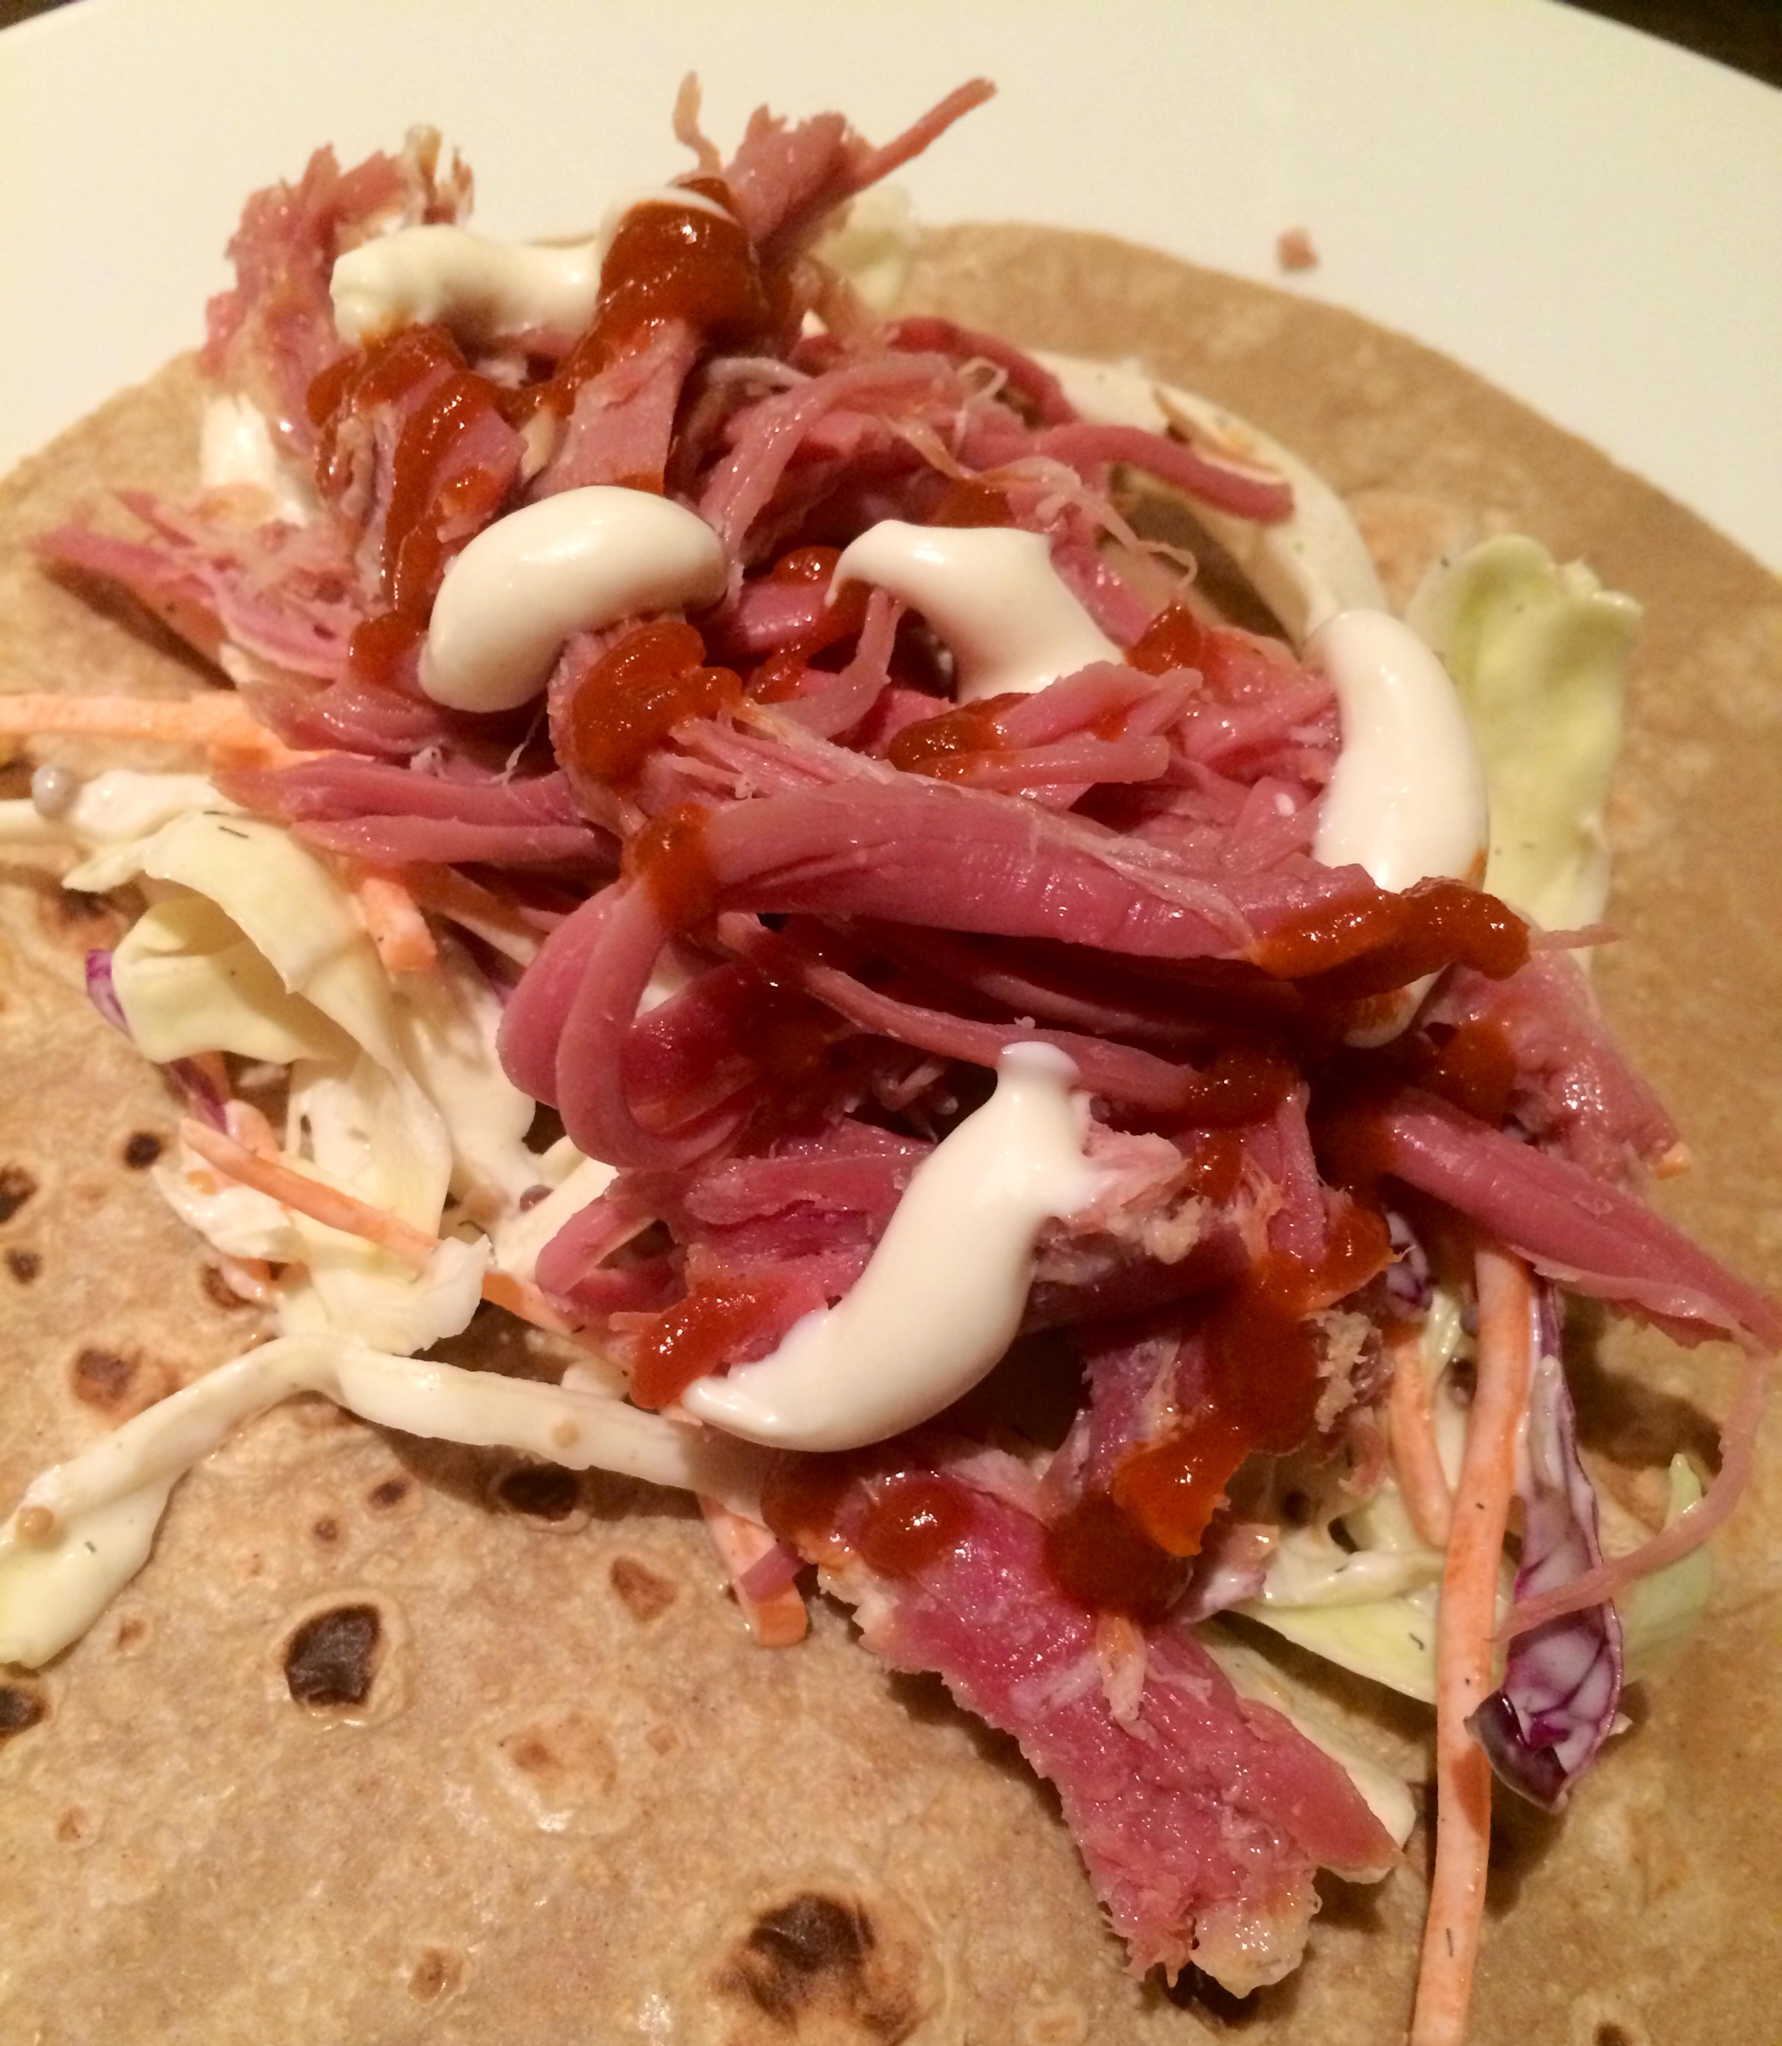 Sriracha coleslaw and corned beef wraps